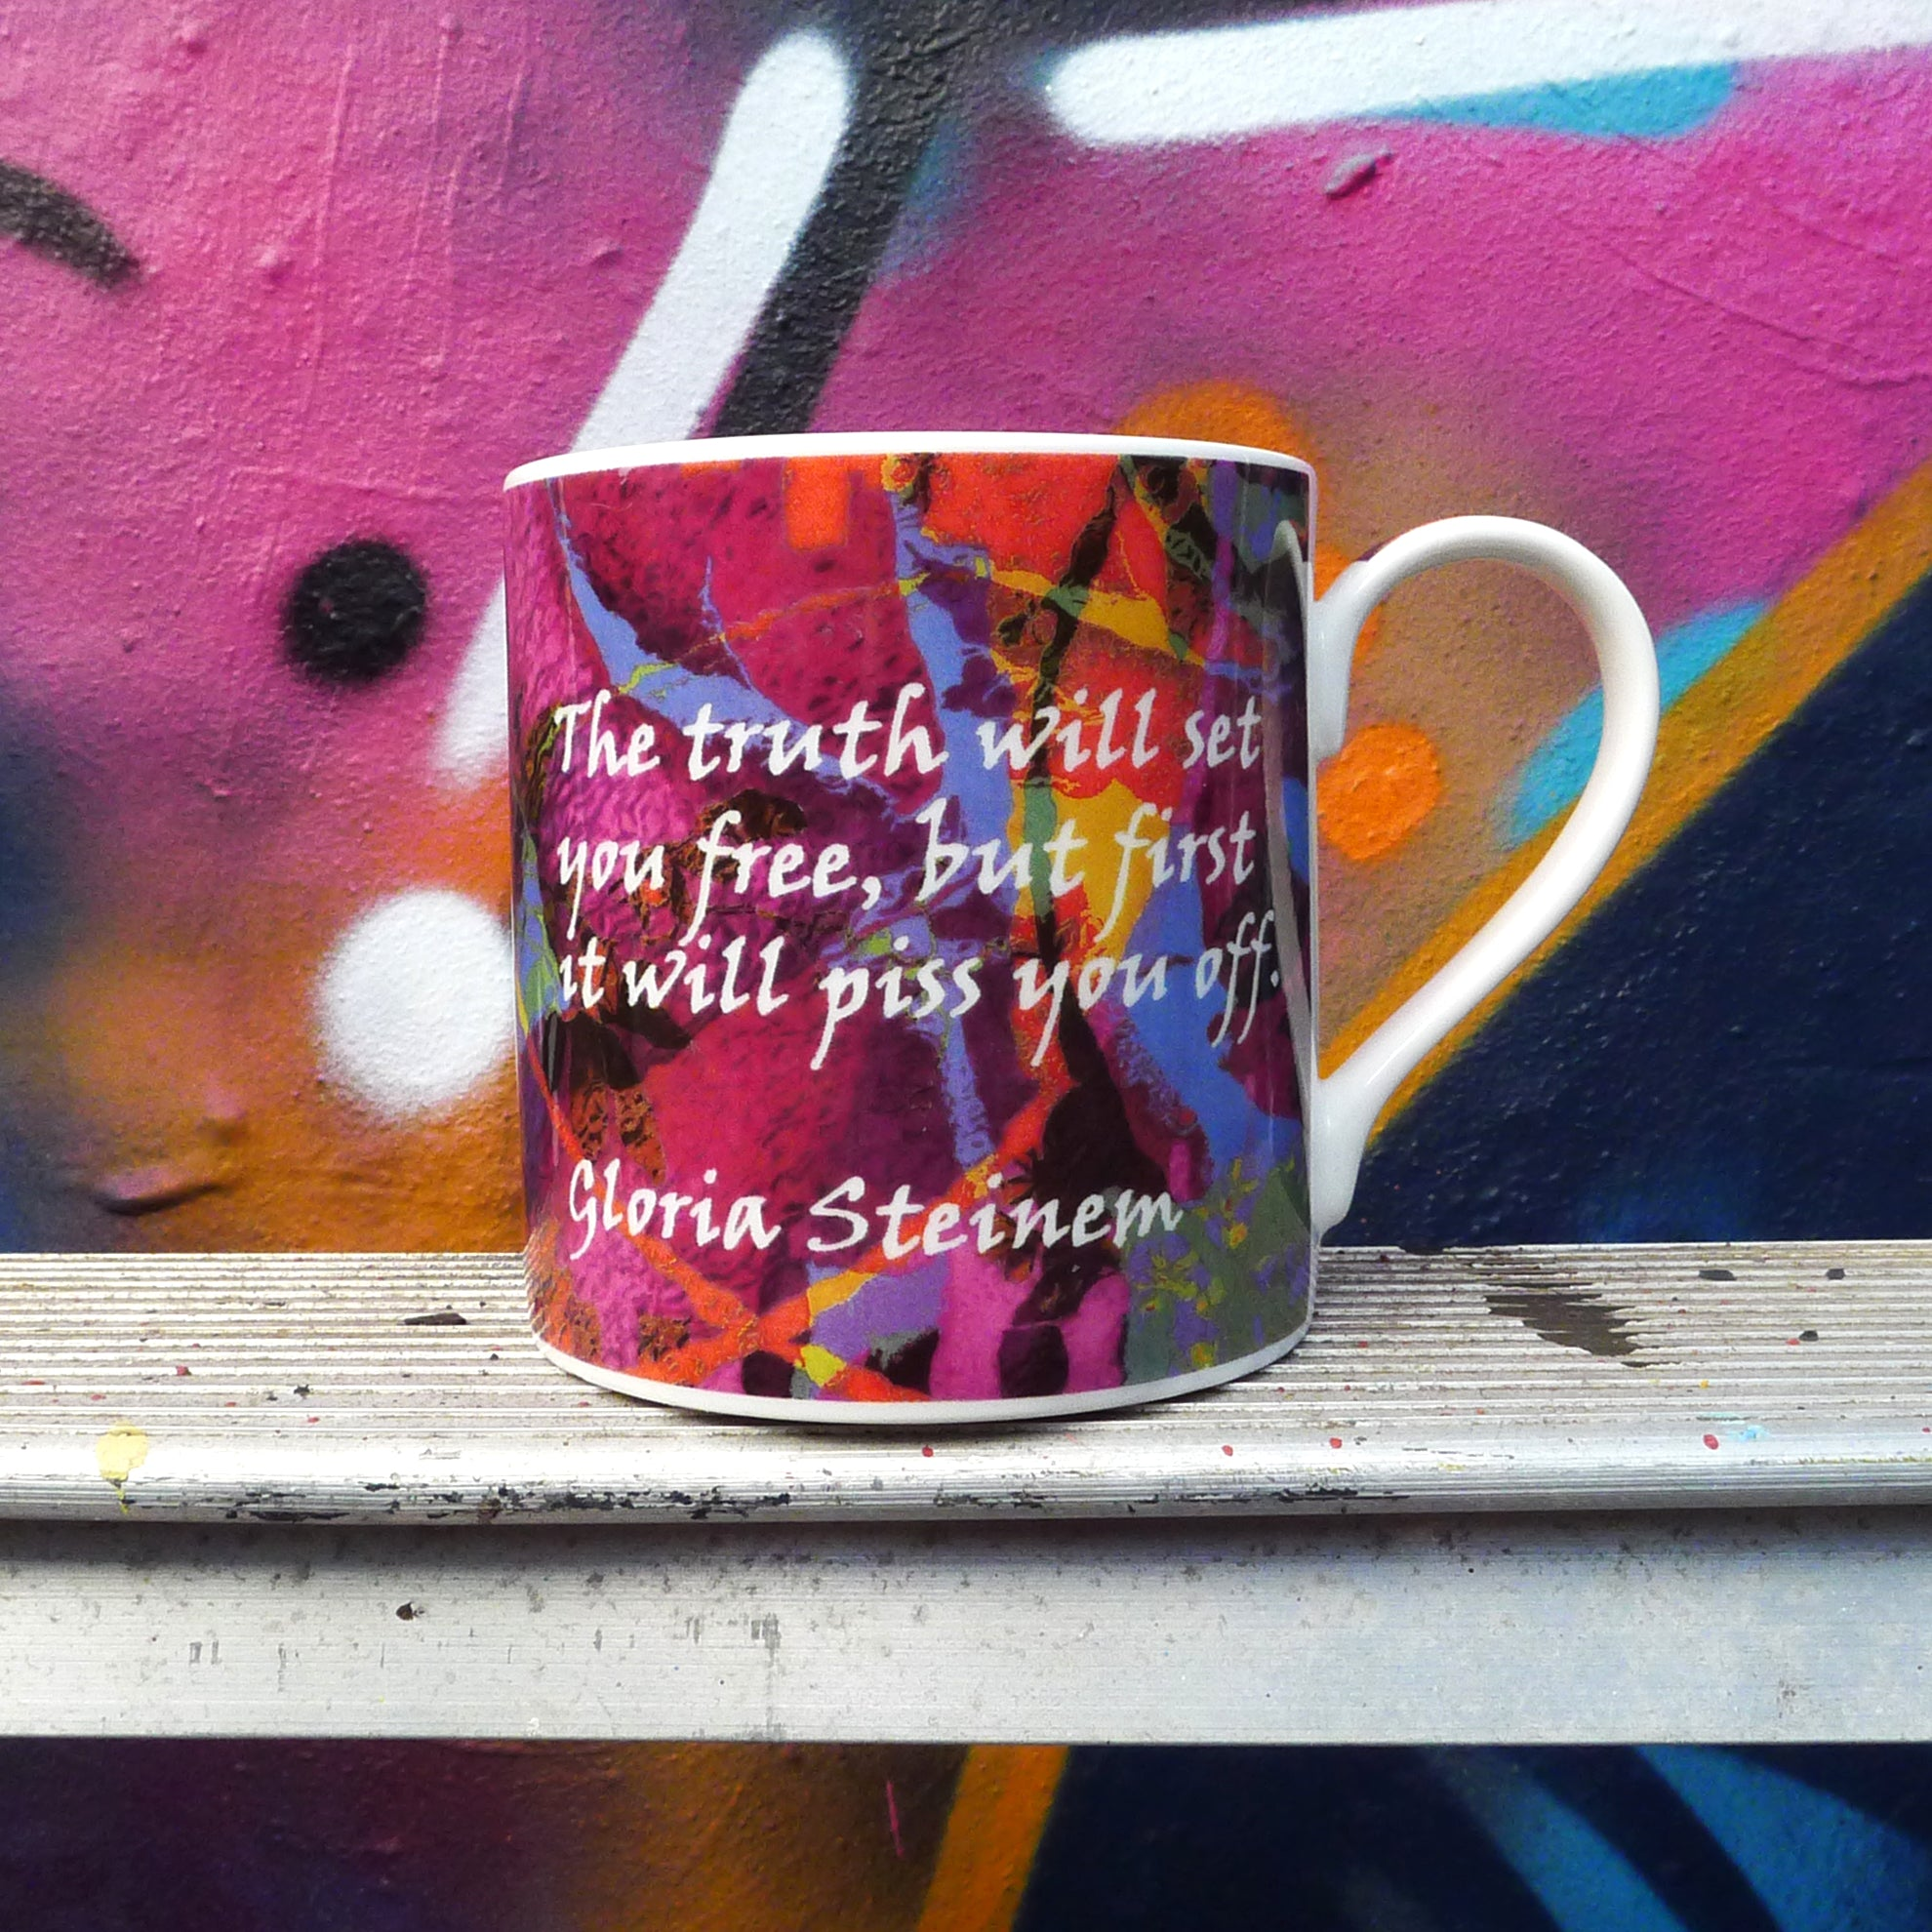 Gloria Steinem (1934- ) Steinem is a feminist, journalist, and social political activist who became nationally recognized as a leader for the American feminist movement in the late 1960s and early 1970s. activist feminist political mug uk